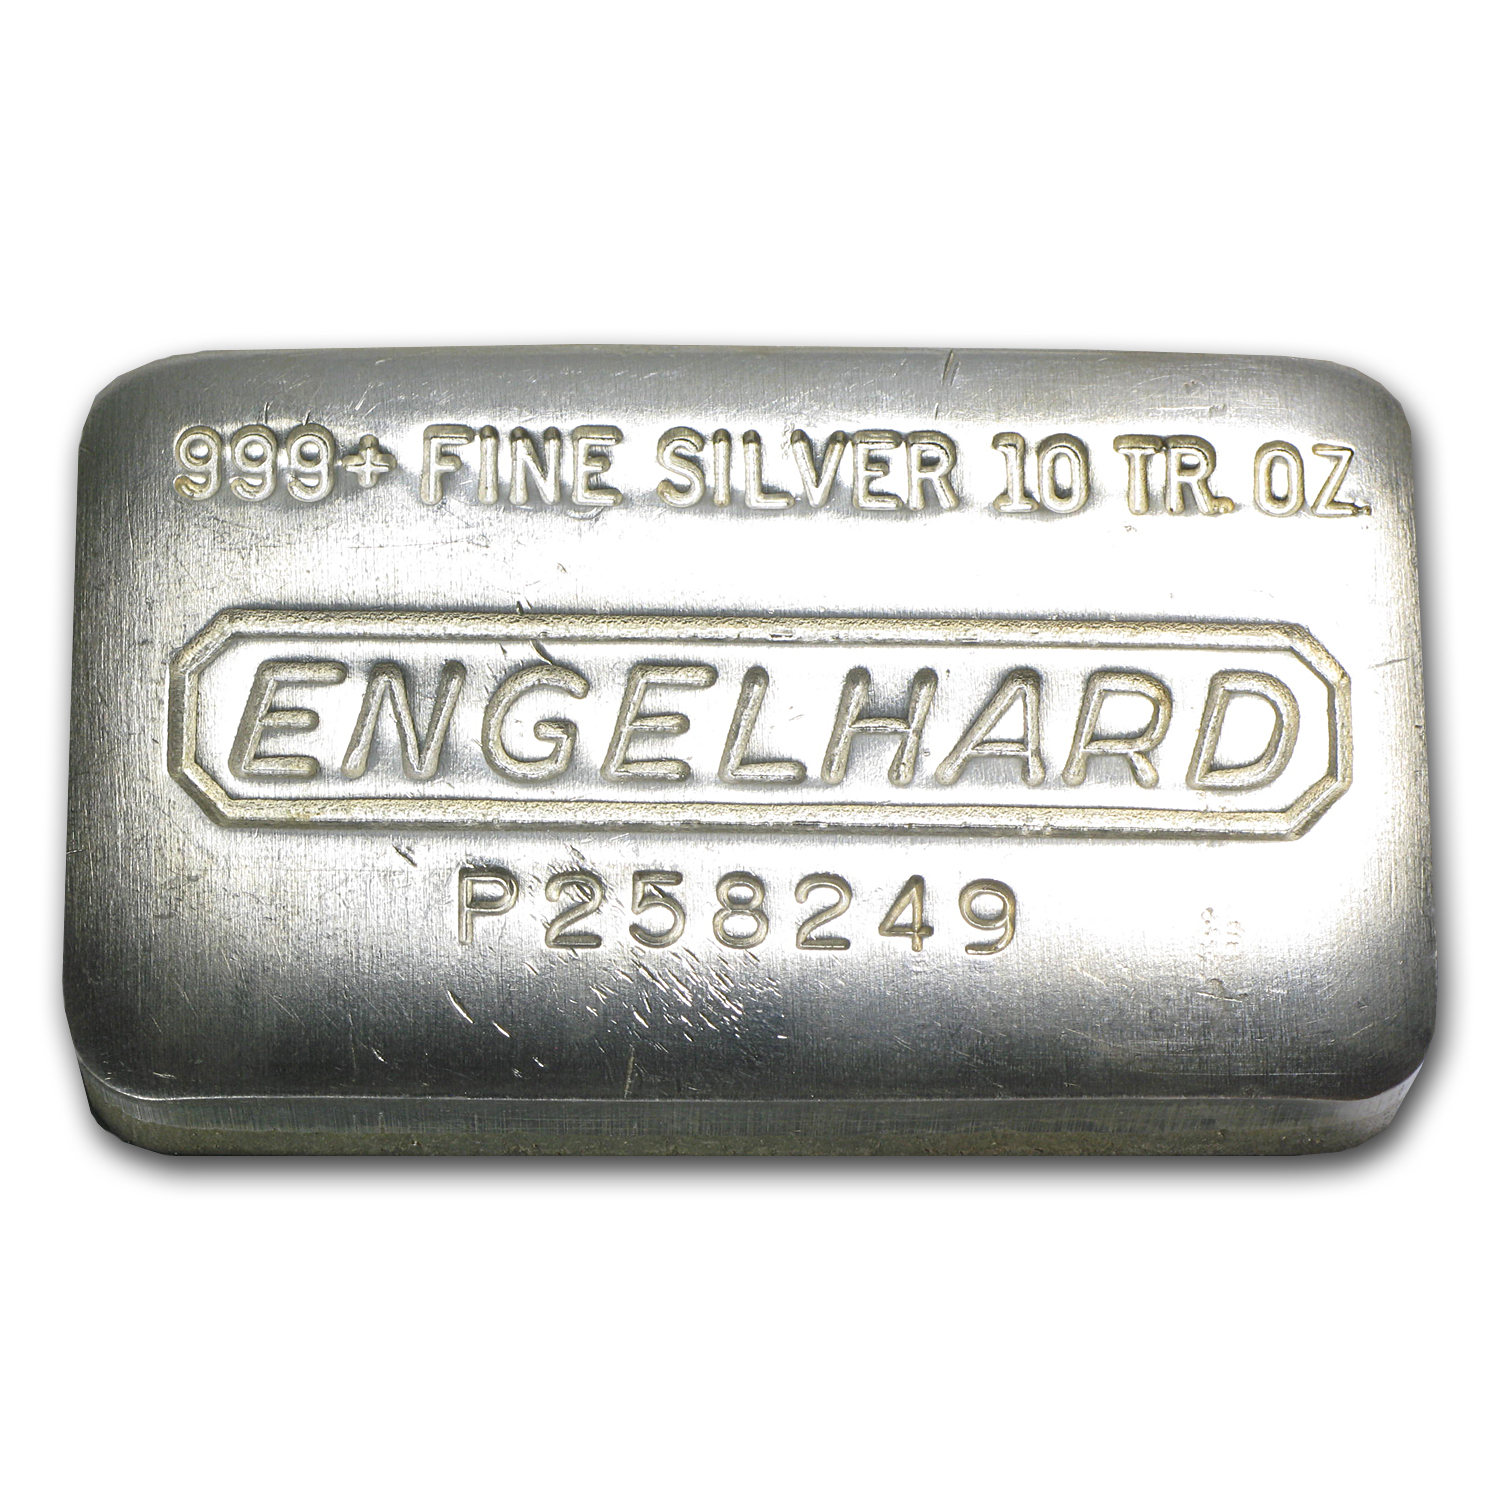 10 oz Silver Bar - Engelhard (Wide/Pressed)